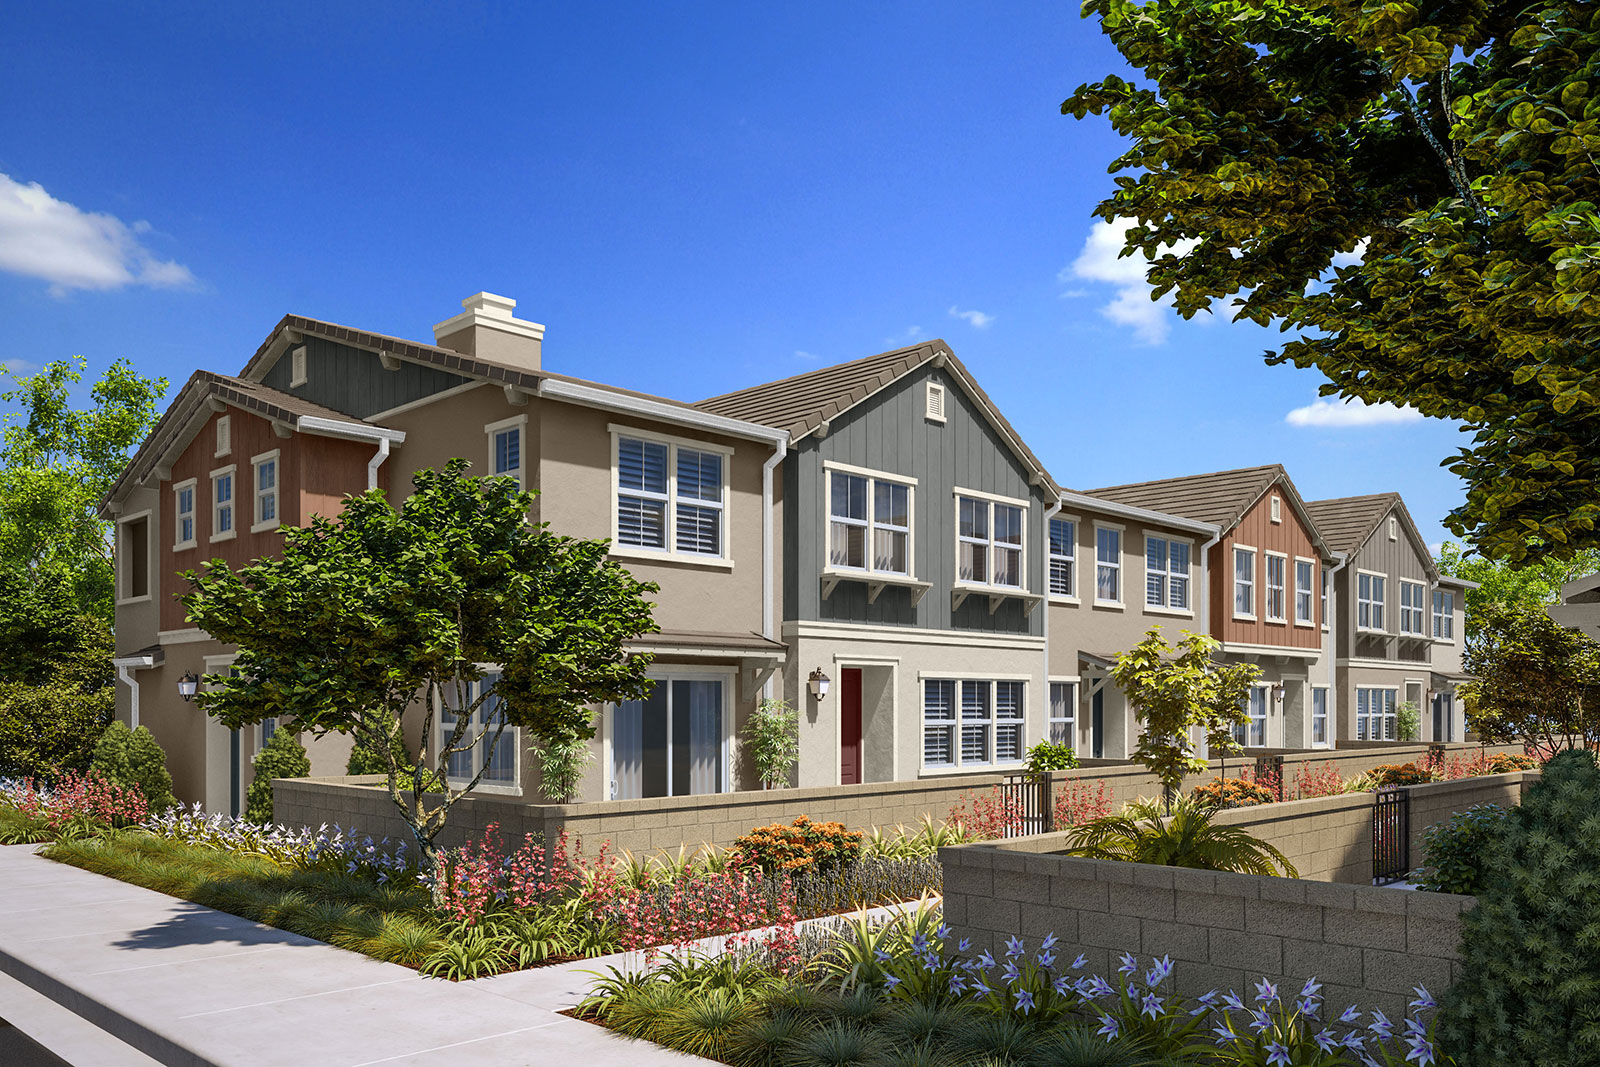 New Townhomes for Sale in San Bernardino